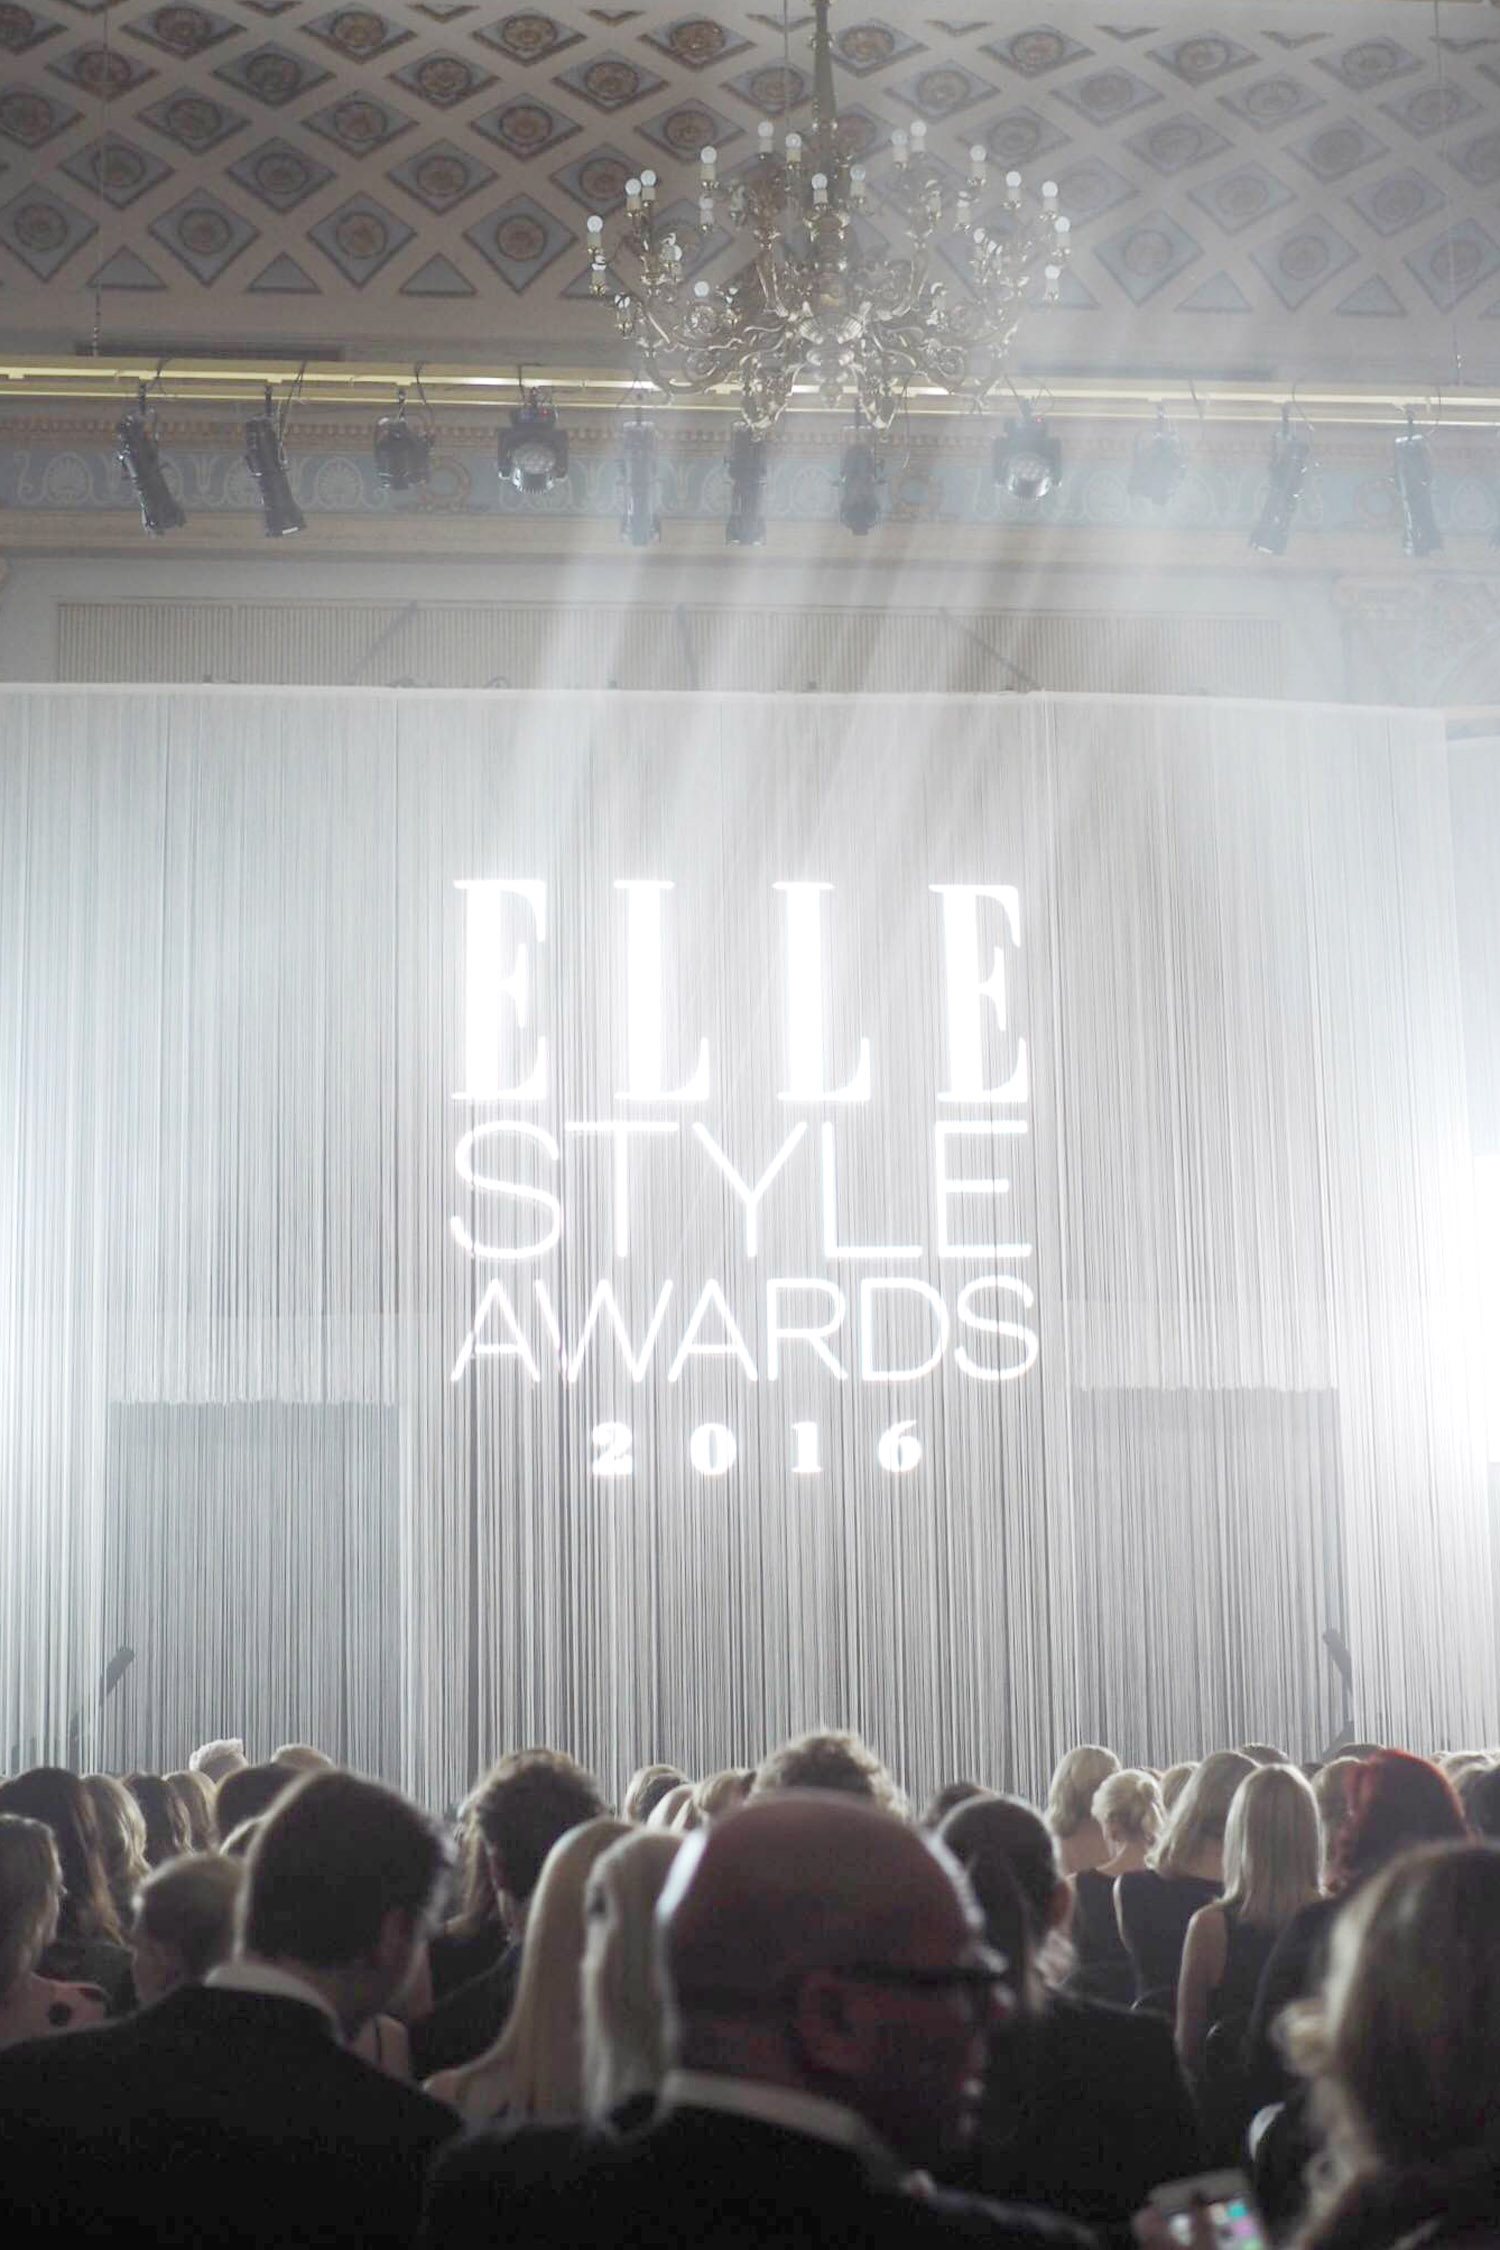 C and the city - ELLE Style Awards 2016 - read more on the blog: //www.idealista.fi/charandthecity/2016/10/21/elle-style-awards-2016-kutsu